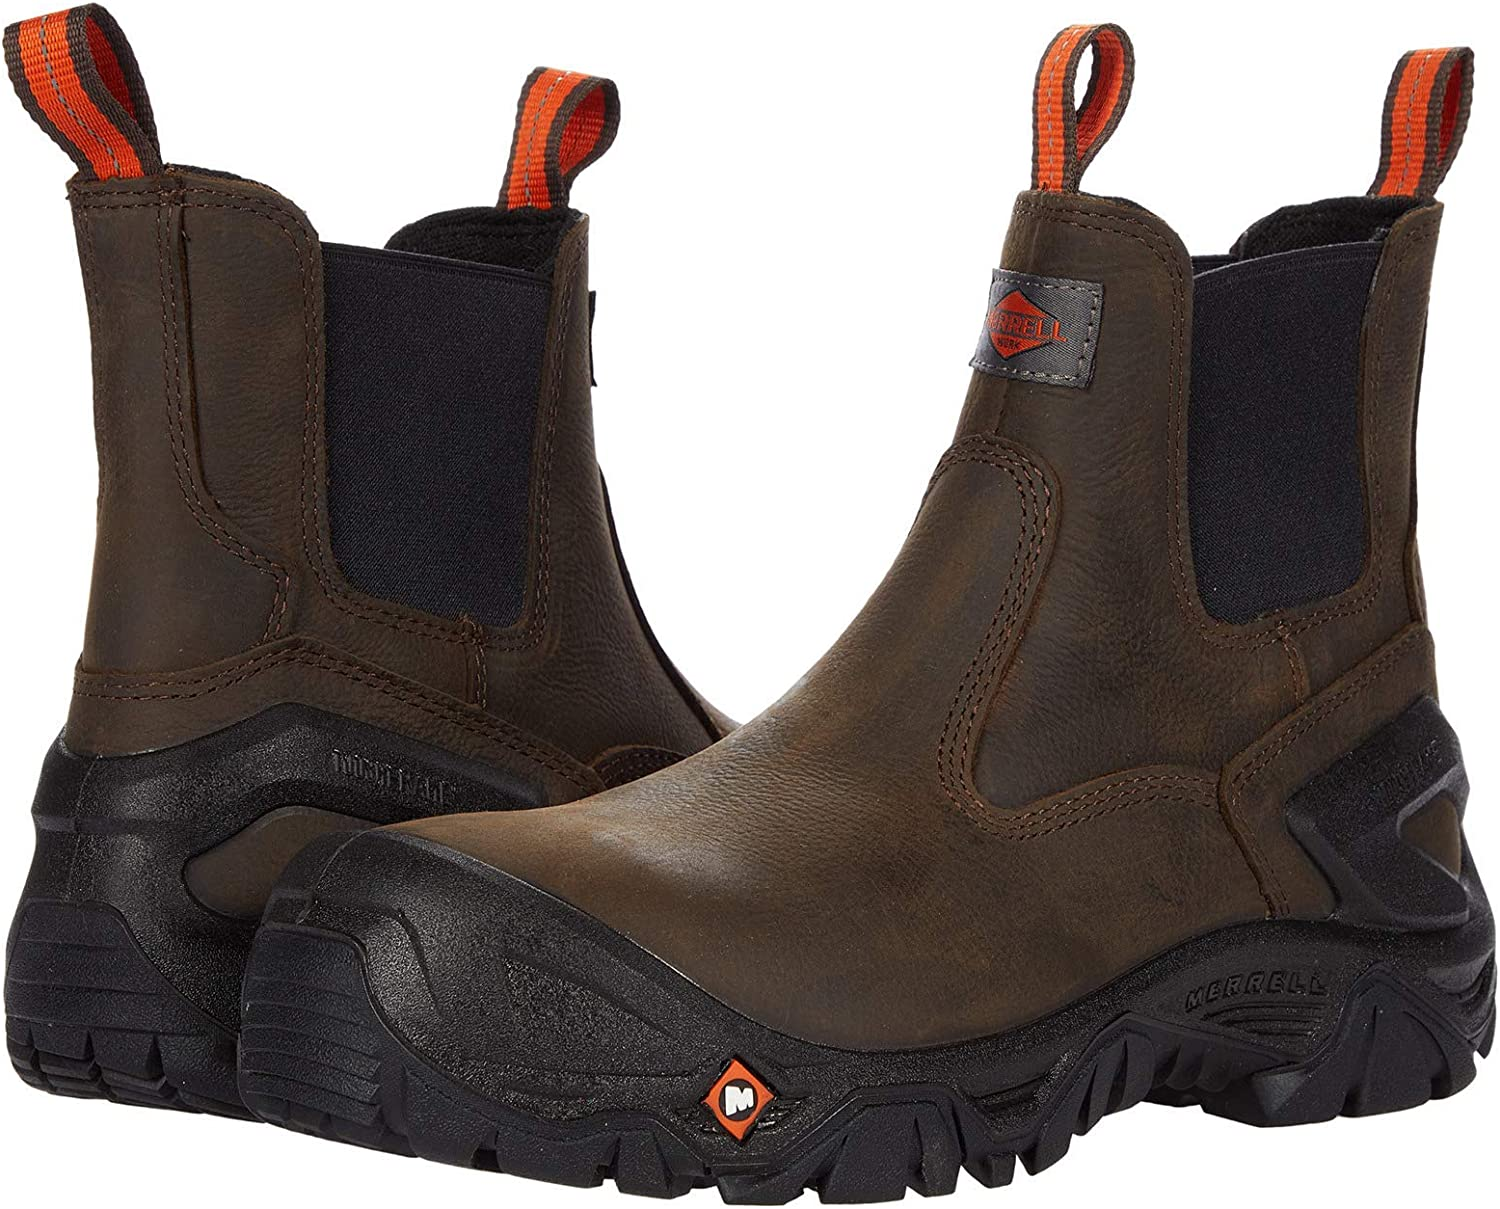 Merrell Challenge the lowest price of Japan ☆ Strongfield Leather CT Chelsea Columbus Mall